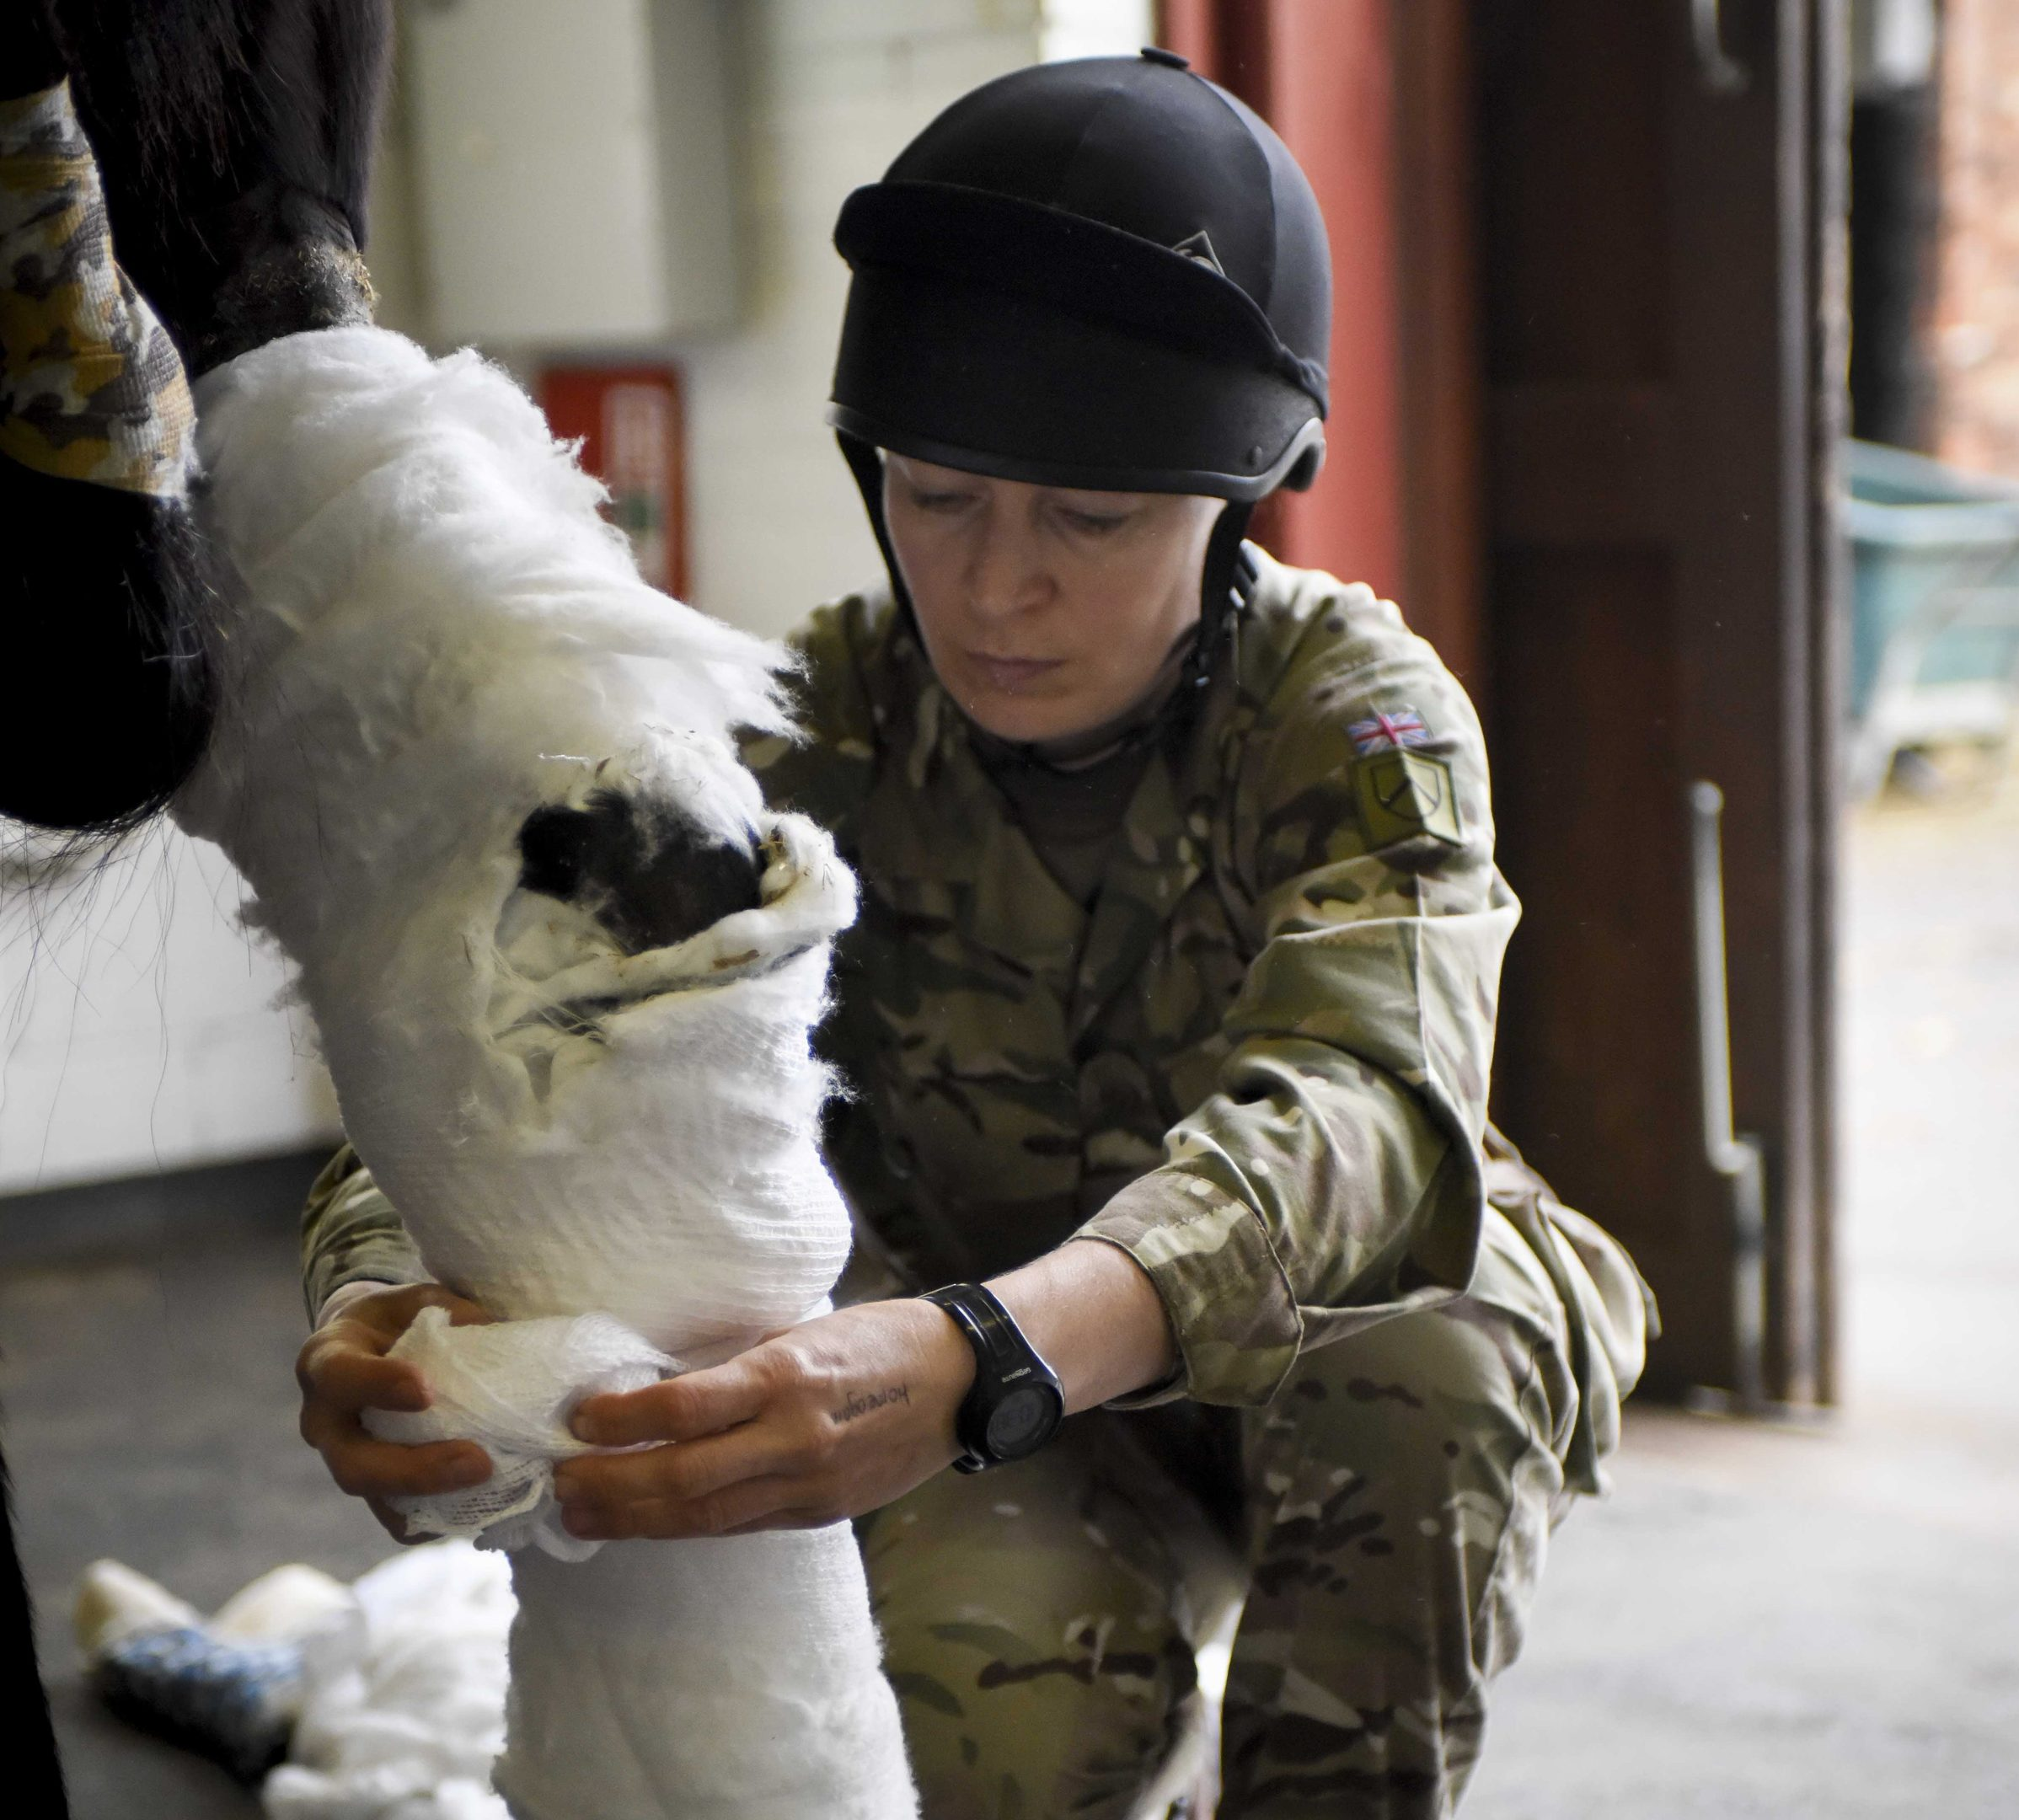 Defence Animal Centre RAMC Melton Mowbery mowbray (pictured) Sgt Kerrie Moore RAVC